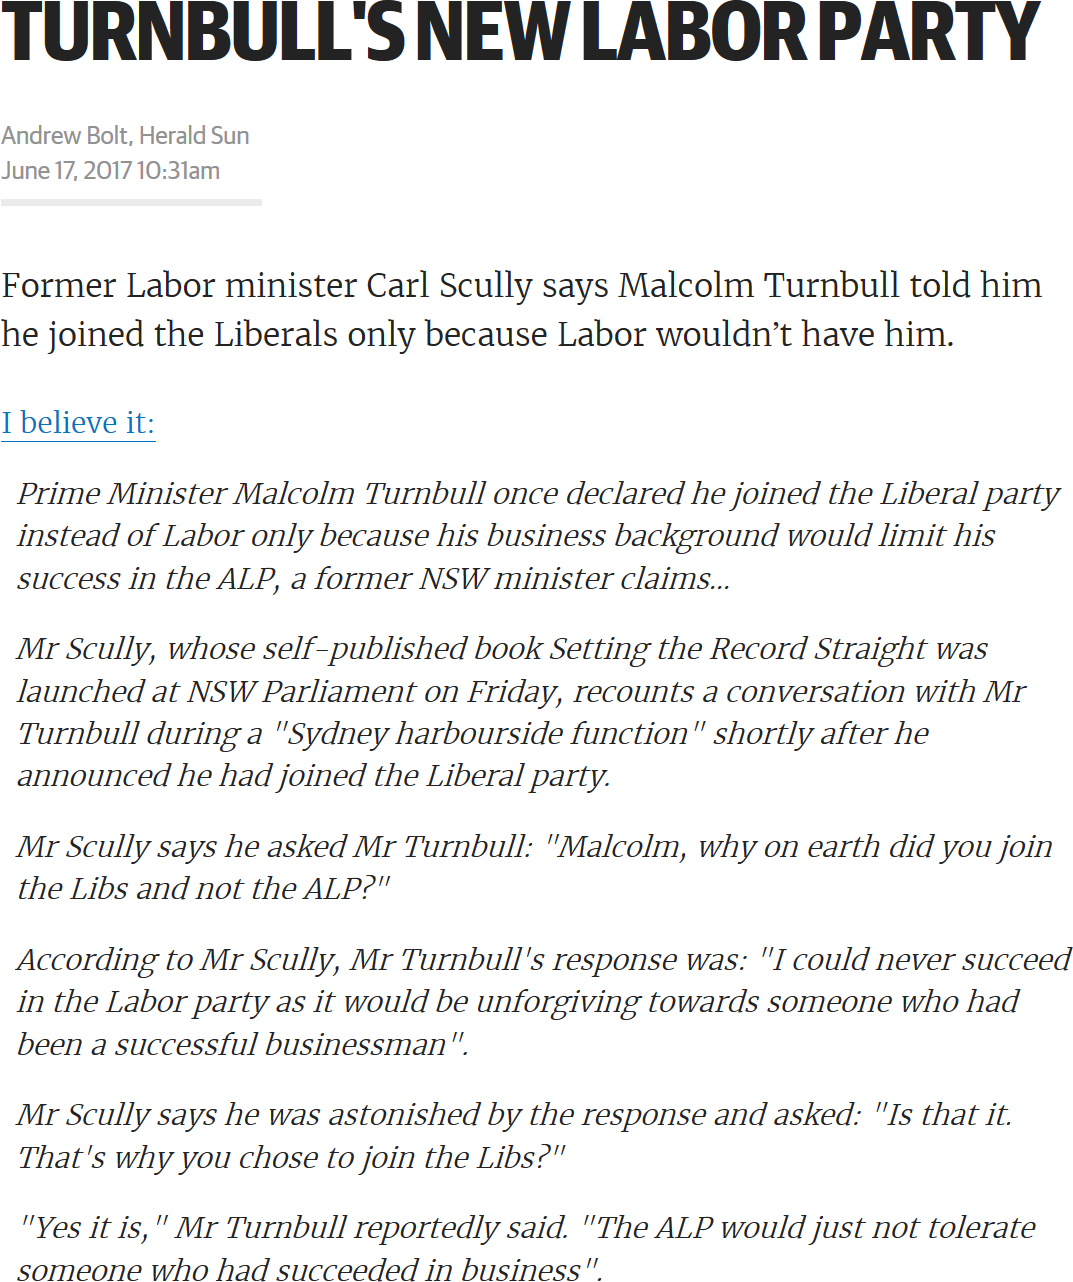 Turnbull's New Labor Party by Andrew Bolt, Herald Sun